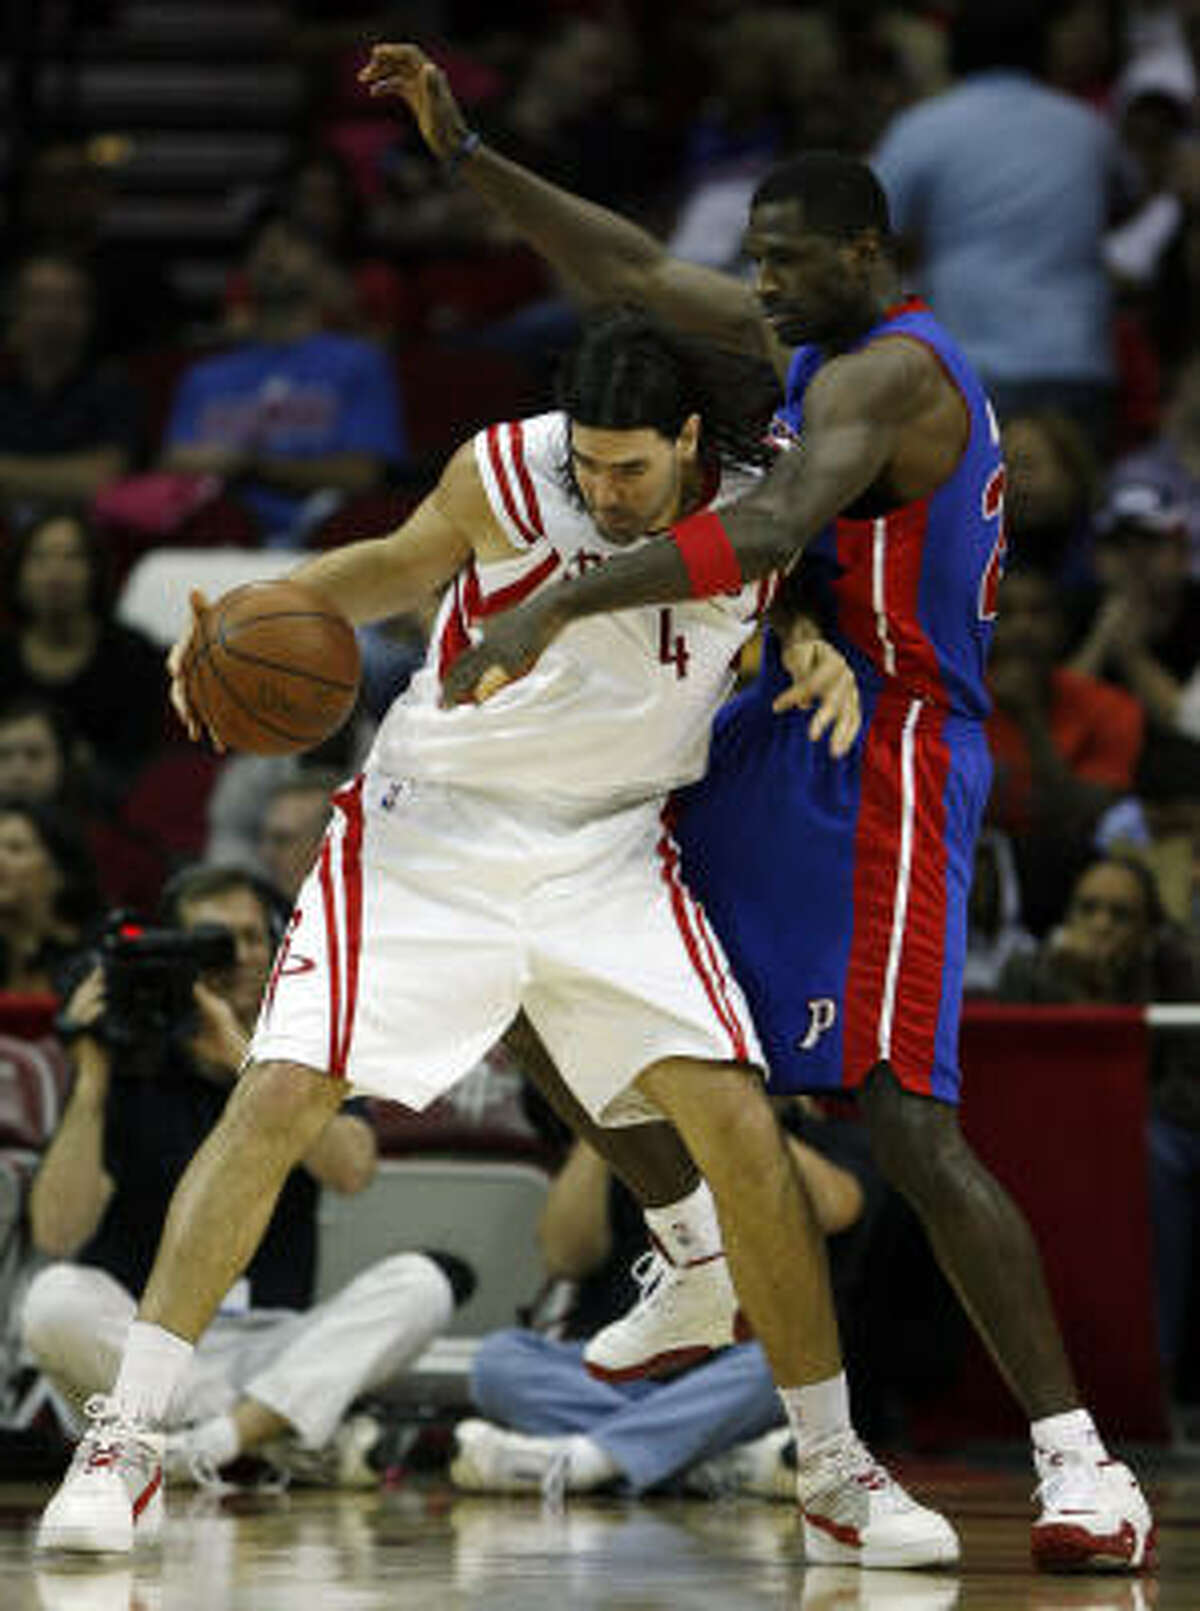 Luis Scola commits an offensive foul against Pistons forward Antonio McDyess in the second half. Scola scored 14 points to go along with six rebounds.